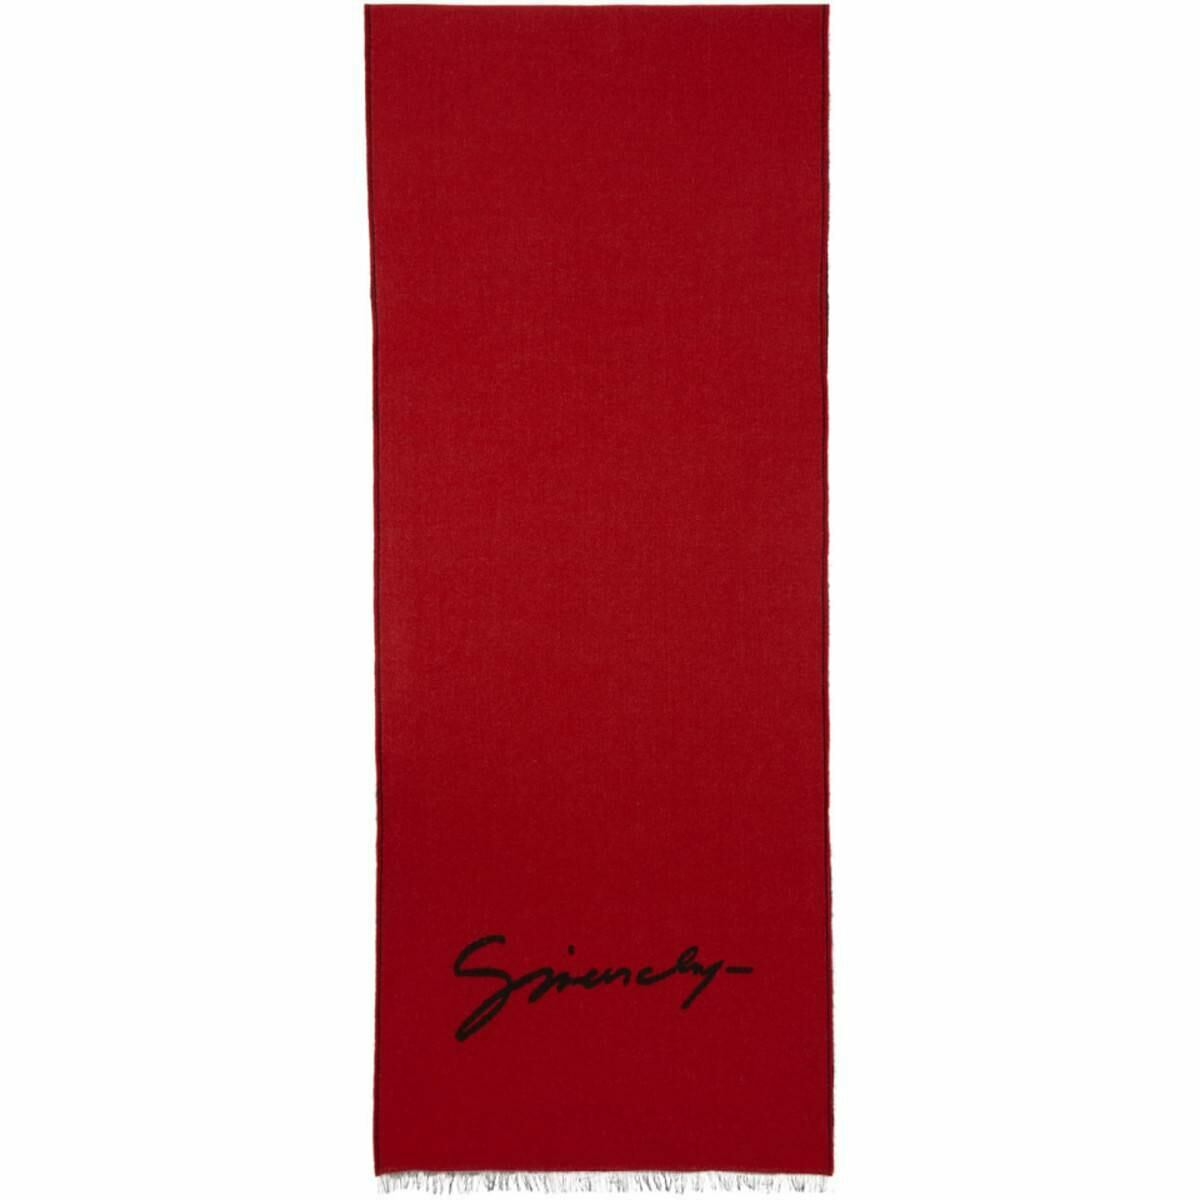 Givenchy Red and Black Signature Intarsia Scarf Ssense USA MEN Men ACCESSORIES Mens SCARFS